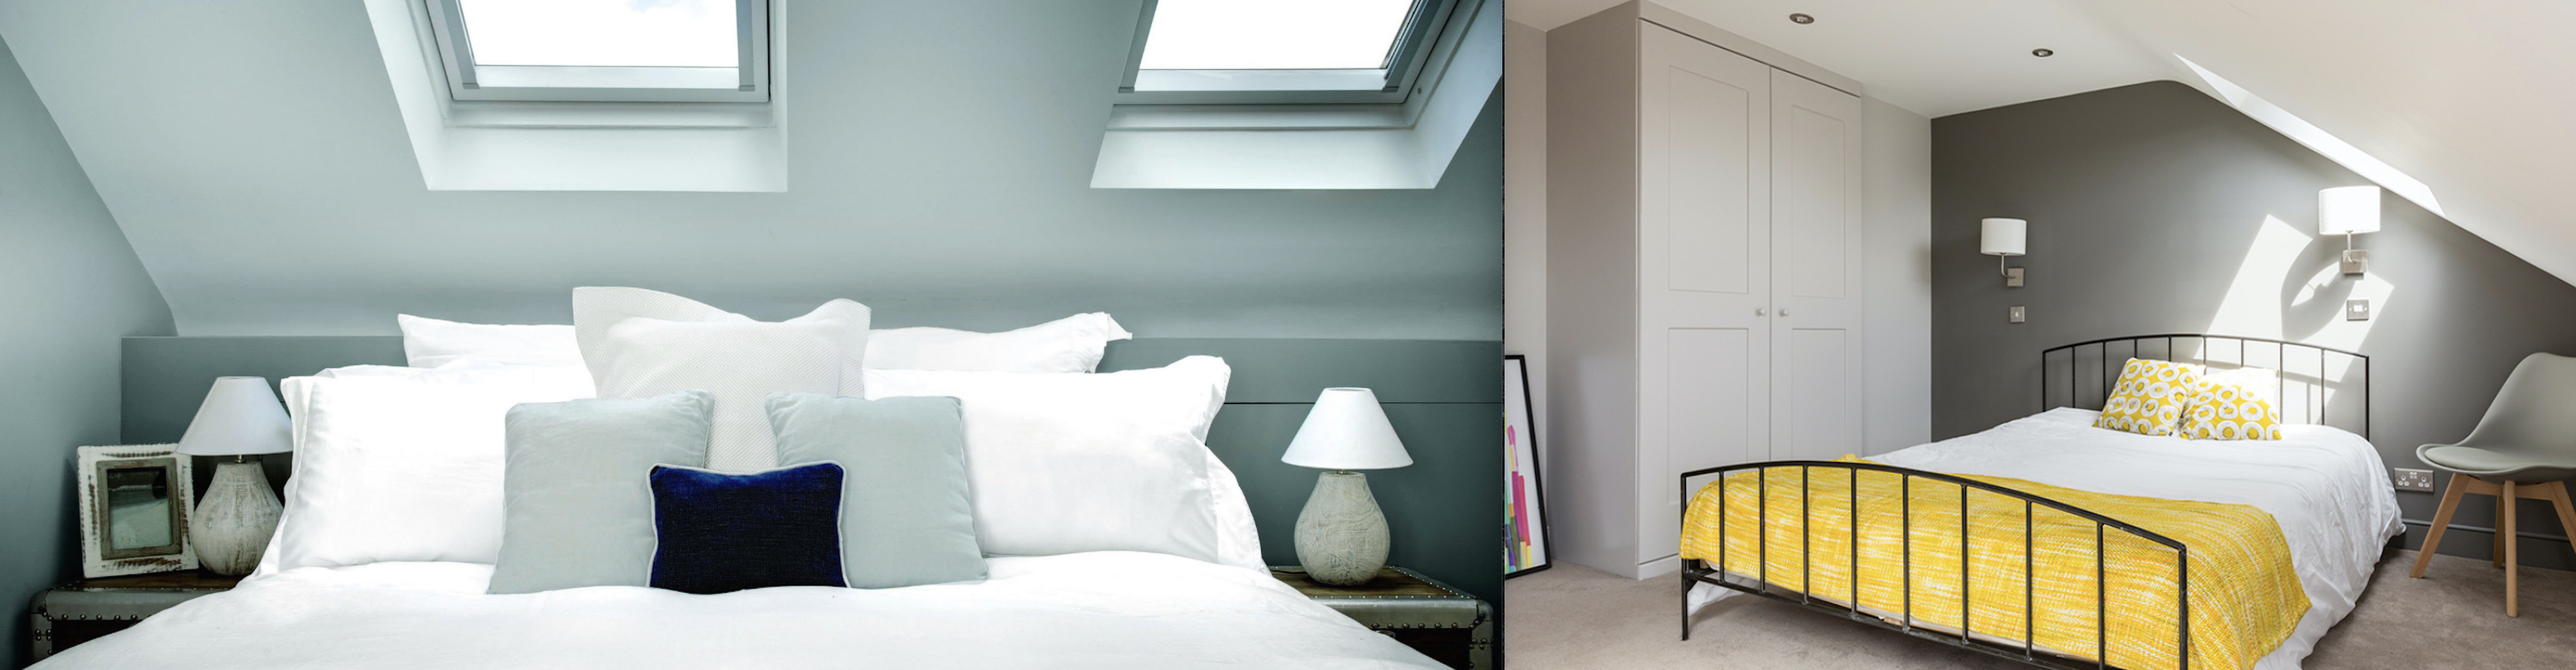 Beautiful Dormer loft conversion in Manchester, creating a new master bedroom with private bathroom, walk in wardrobe and stunning new oak staircase. Six Velux polyurethane windows SK06 GGU and 6 GPU SK06 Velux windows.